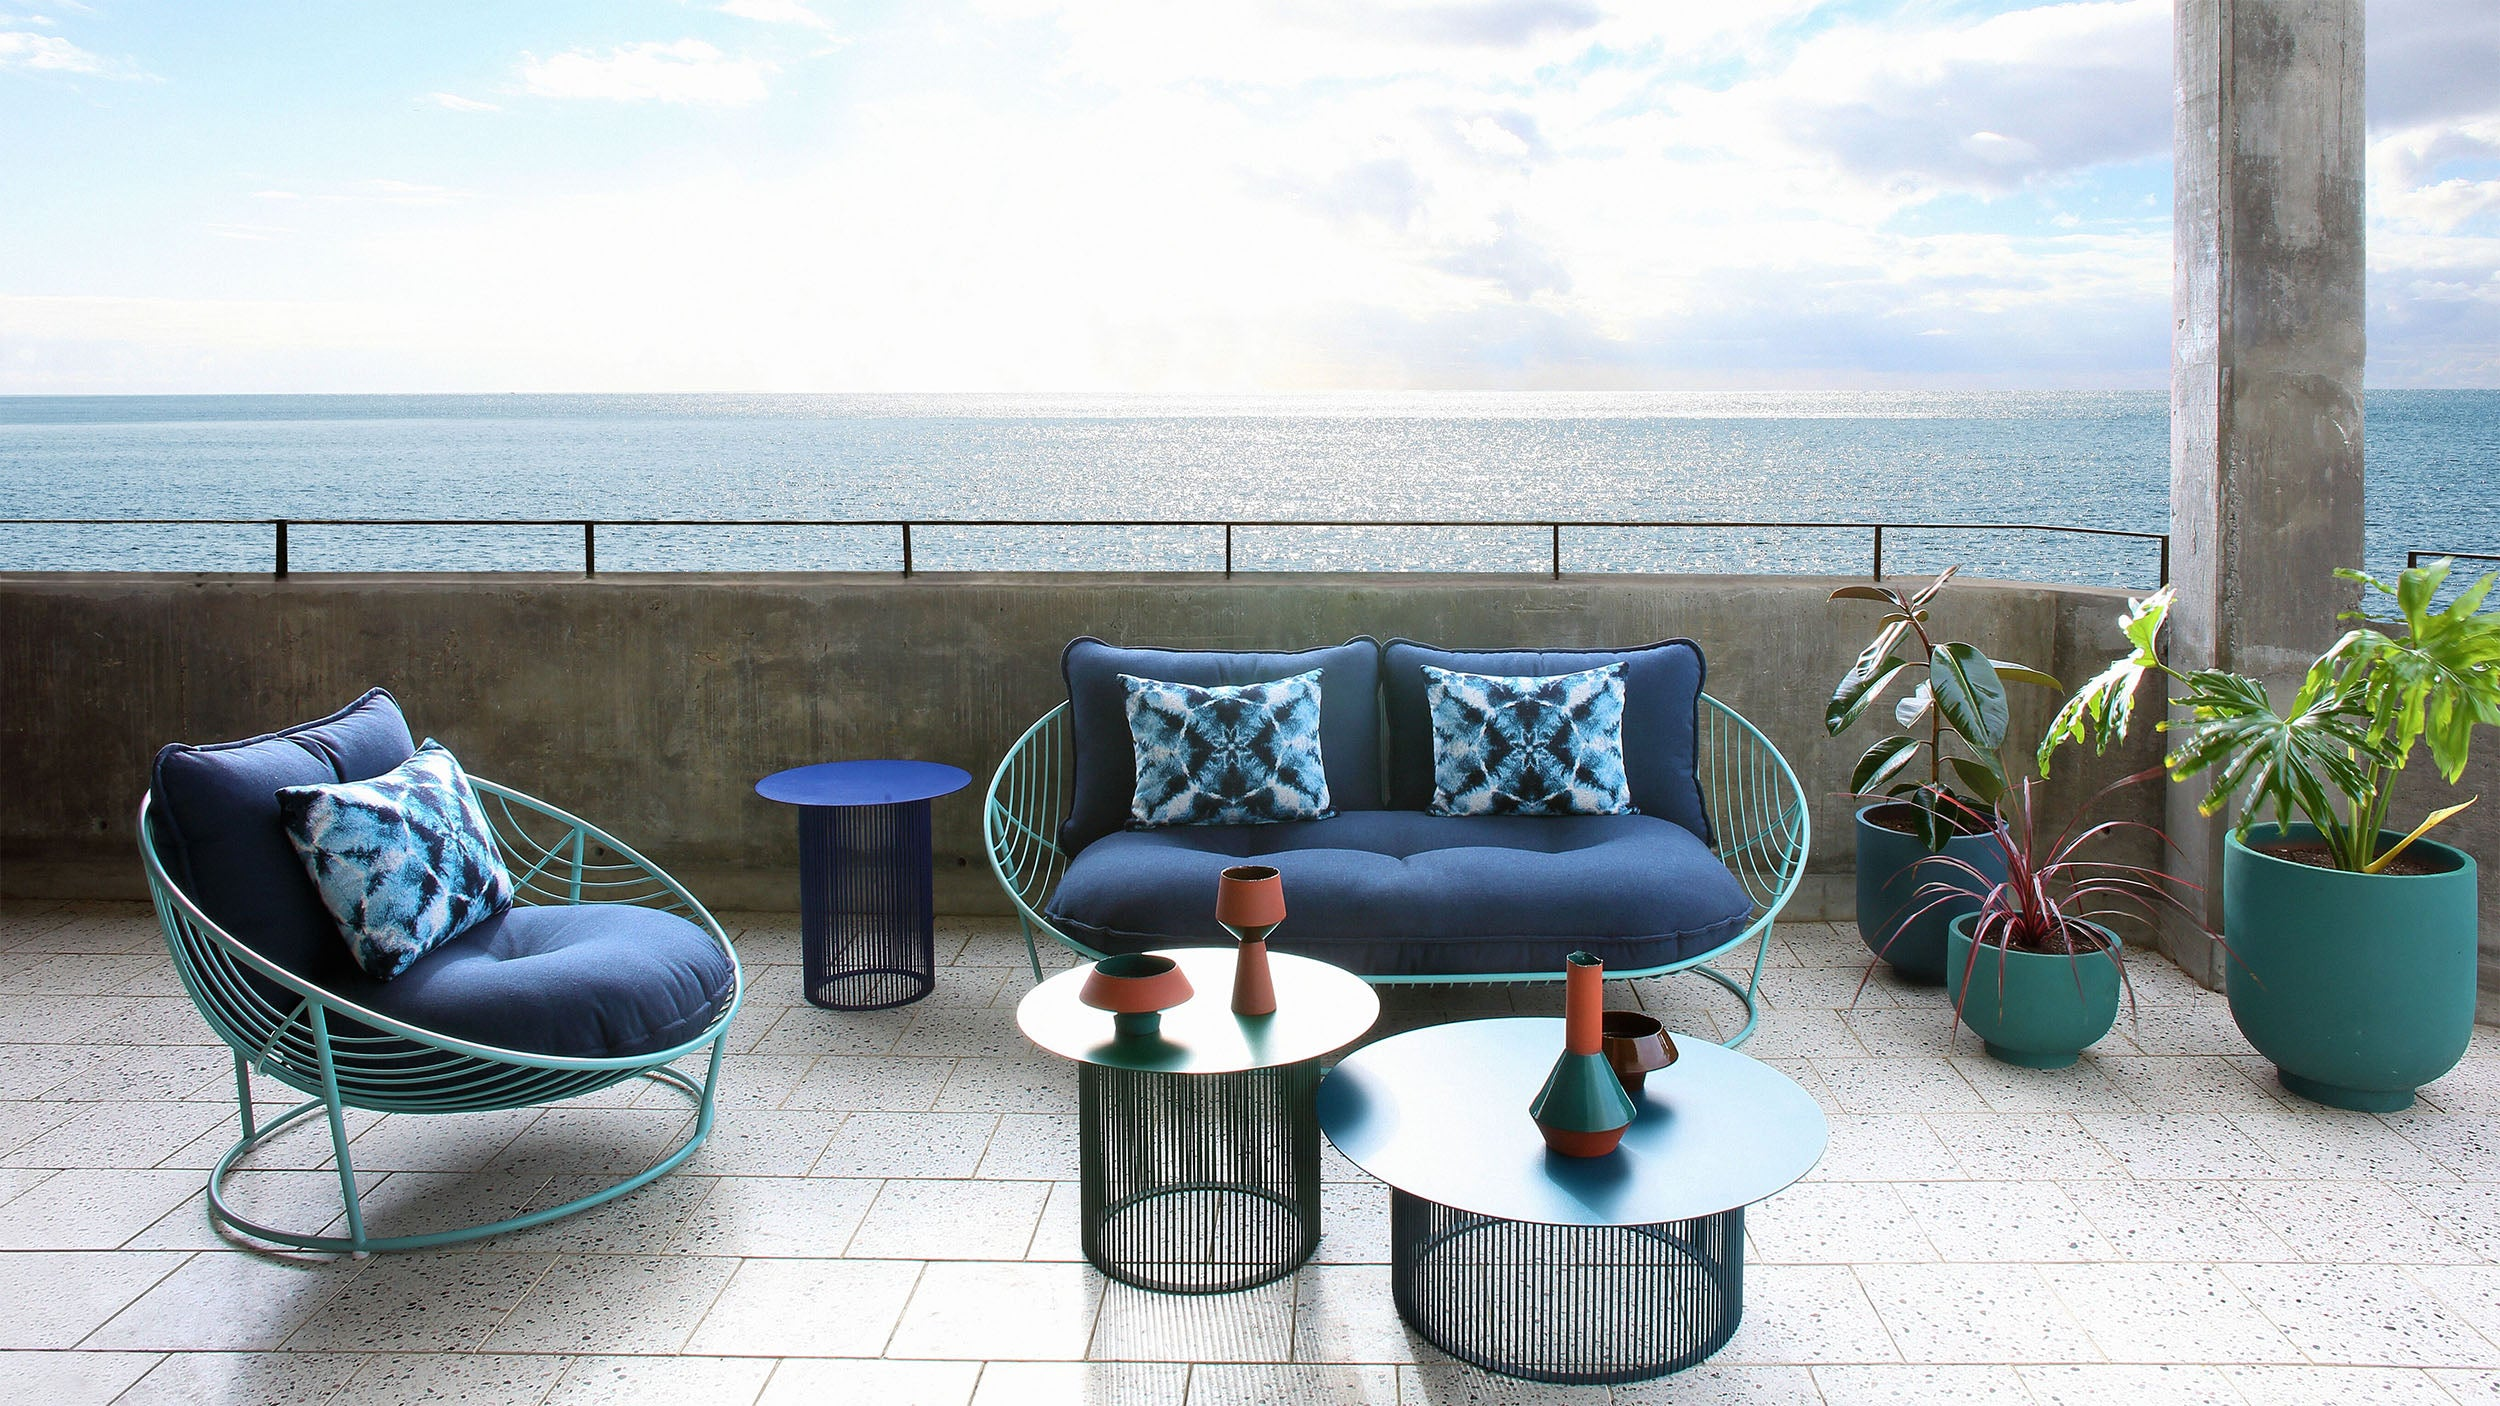 Haldane Martin, outdoor furniture, chairs and coffee tables styled in outdoor setting. Haldane Martin outdoor furniture is available at Sarza home goods and furniture store in Rye New York.